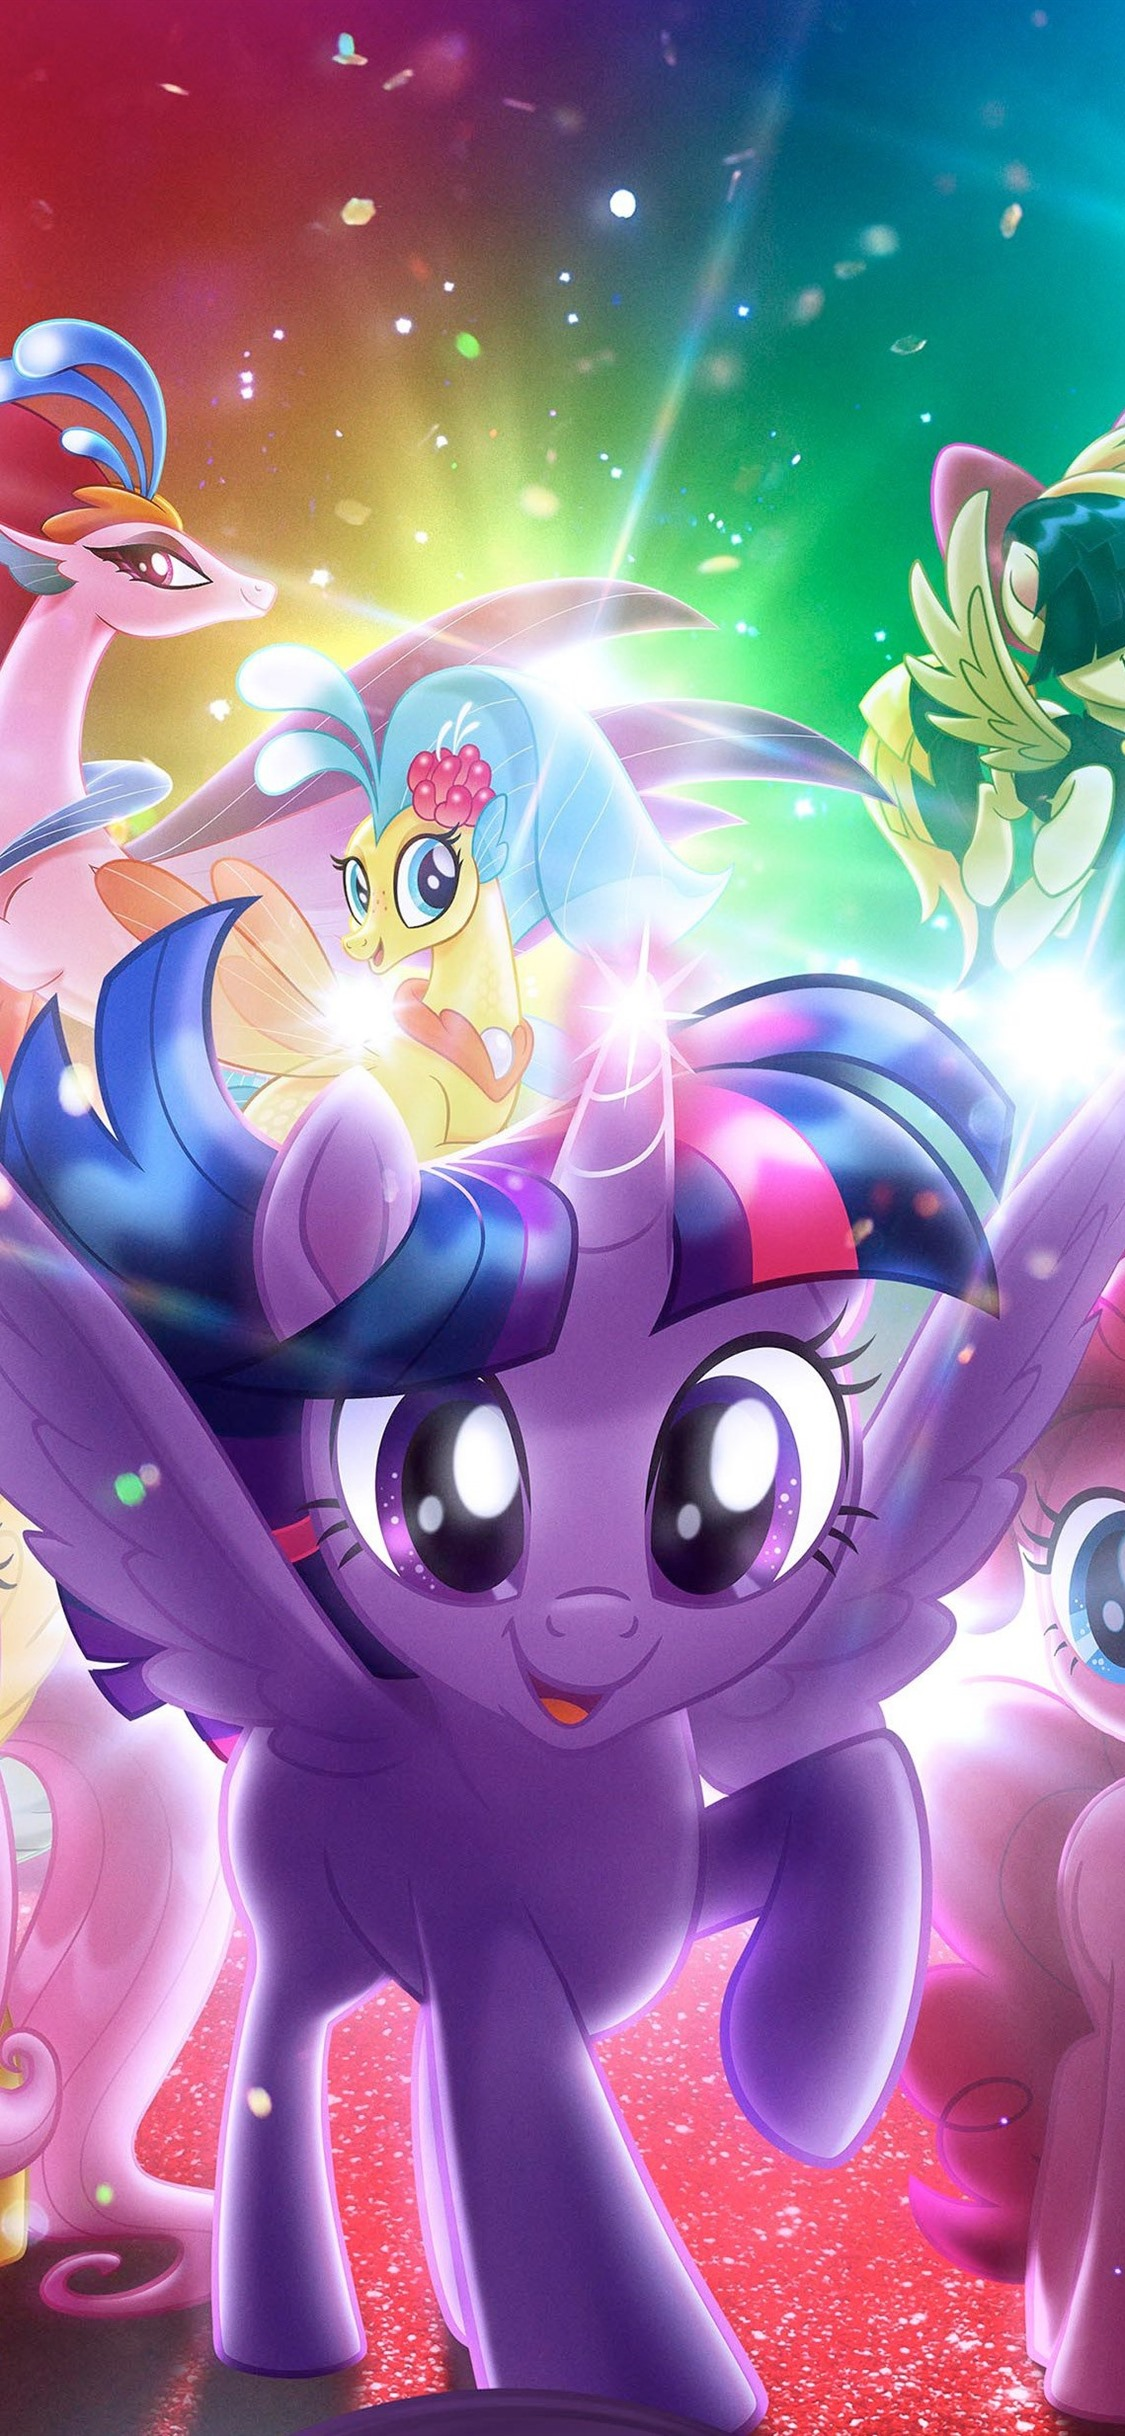 Wallpaper My Little Pony Cartoon Movie 3840x2160 Uhd 4k Picture Image